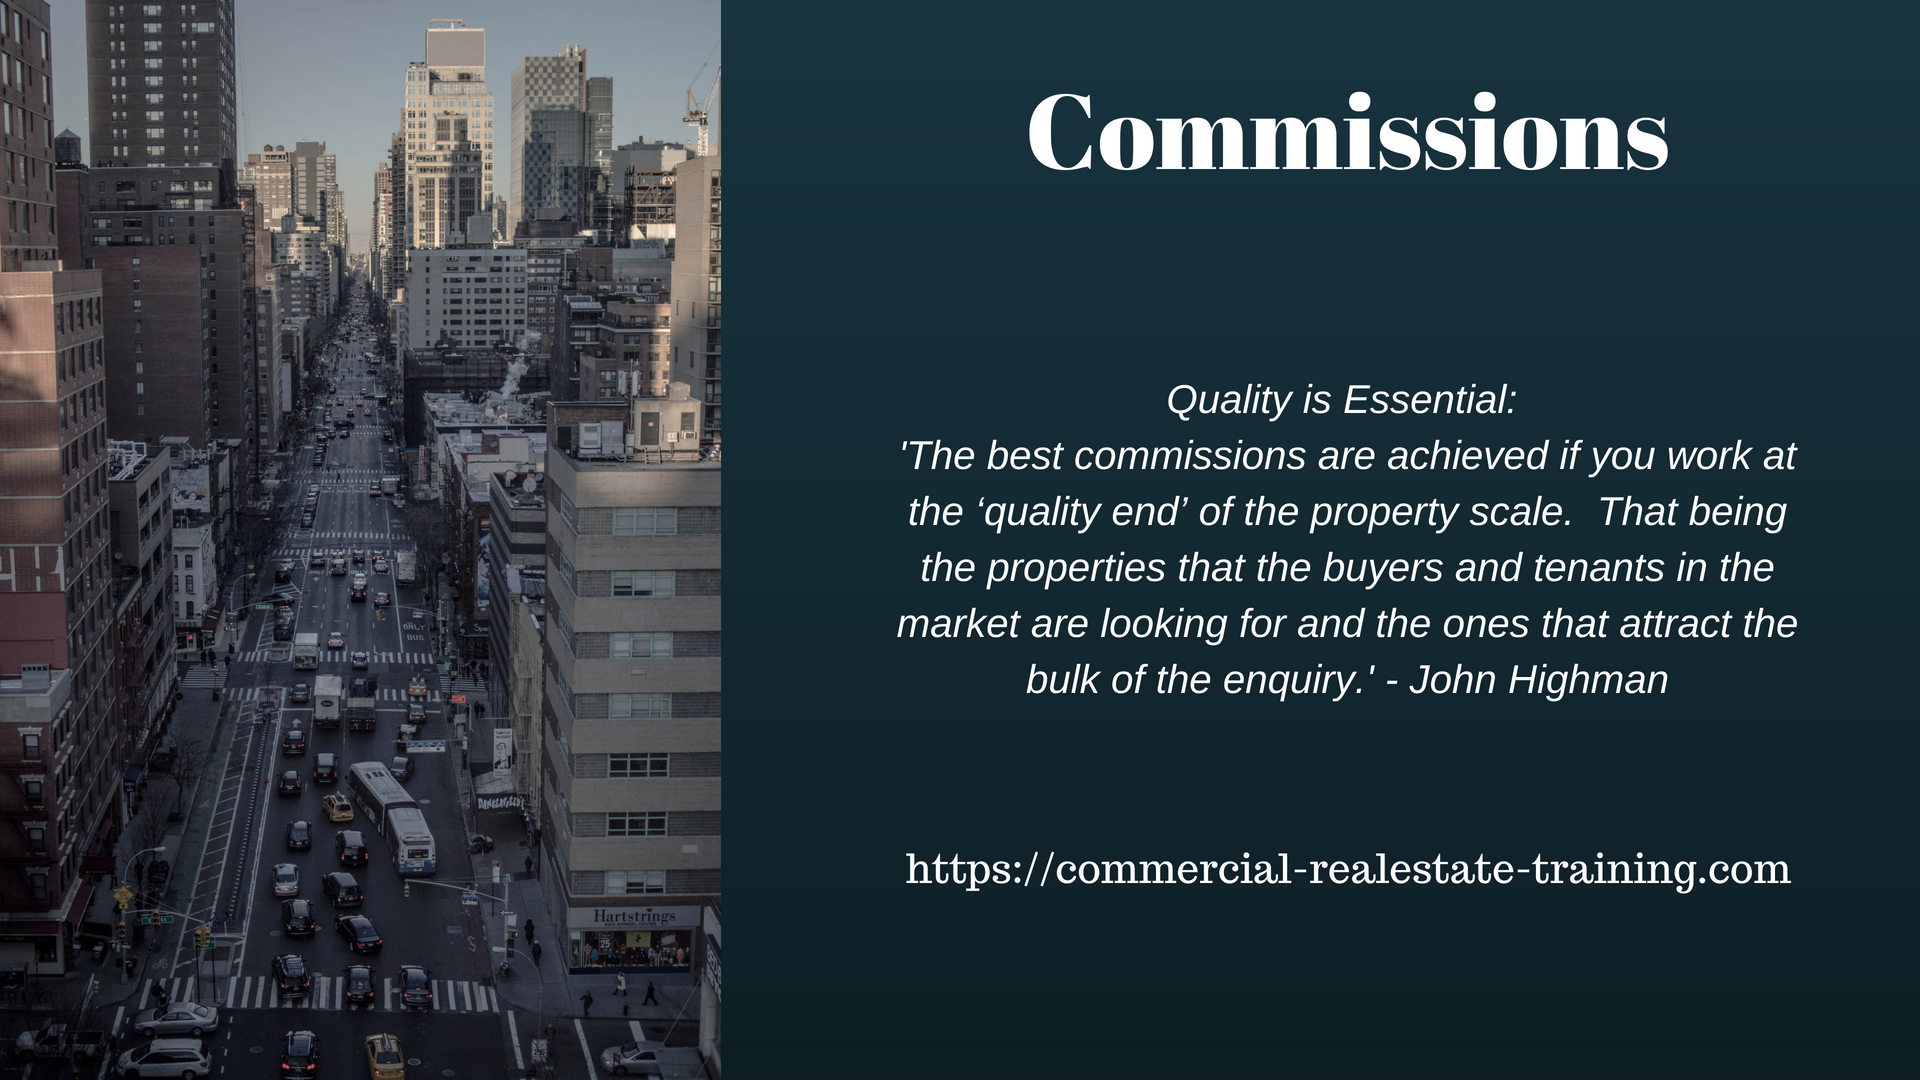 Wallpaper For Brokerage Commission Focus Commercial Real Estate Training